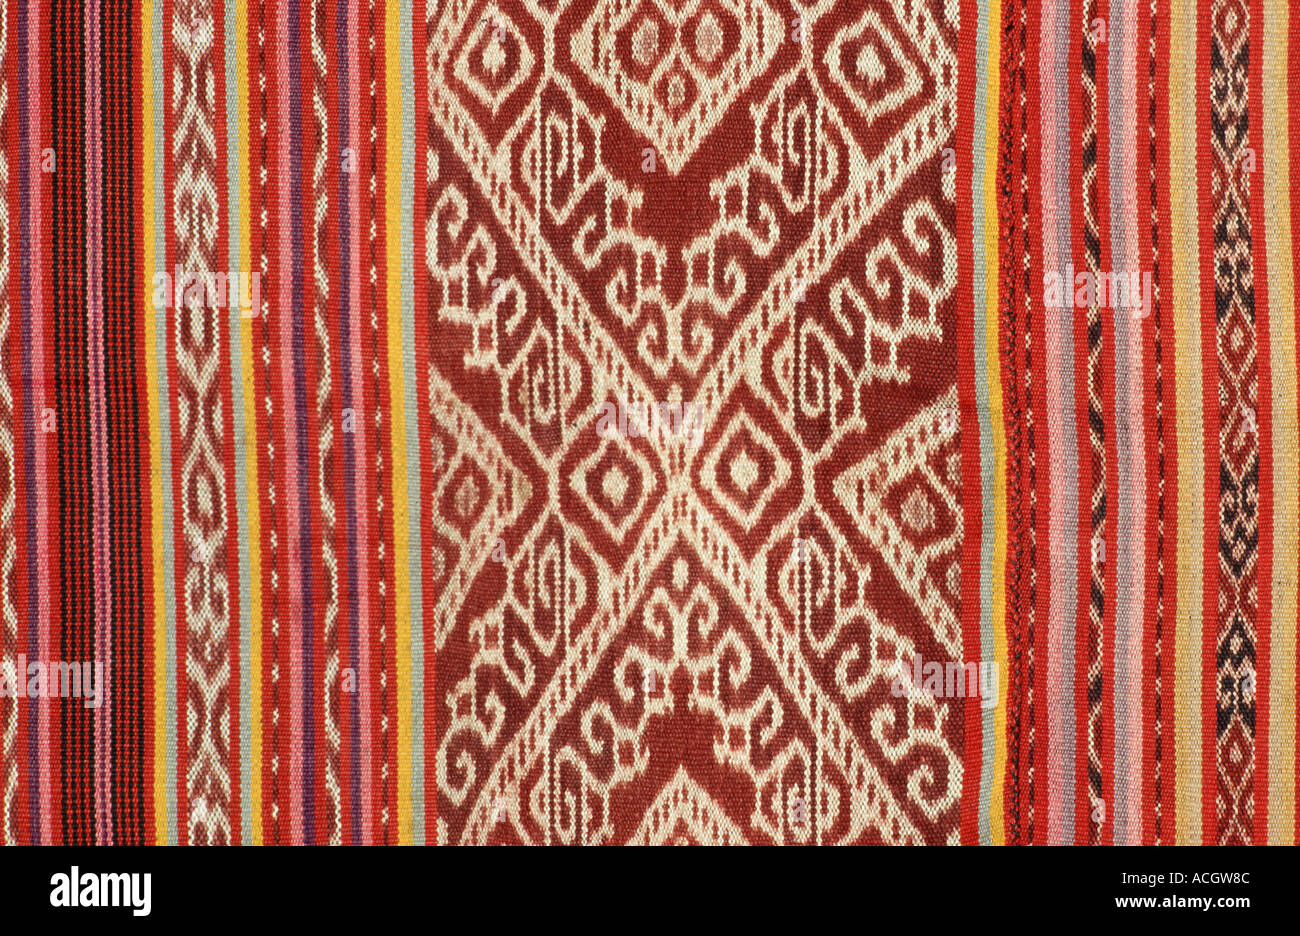 Detail of ikat decorated skirt fabric from Timor Indonesia Stock Photo